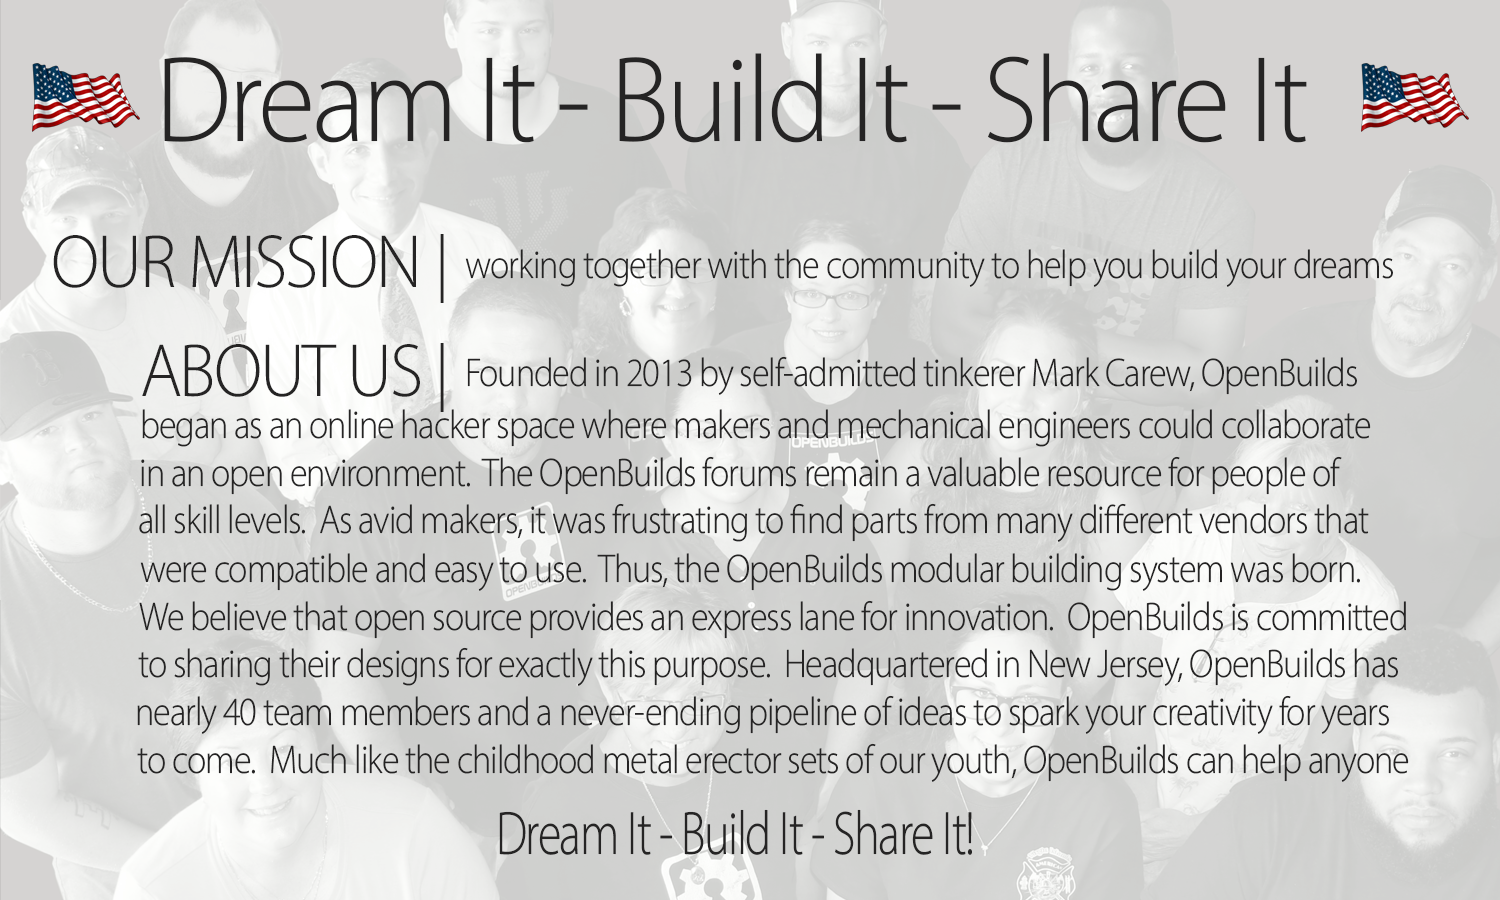 openbuilds-team-whitefilter-aboutus-v3.png